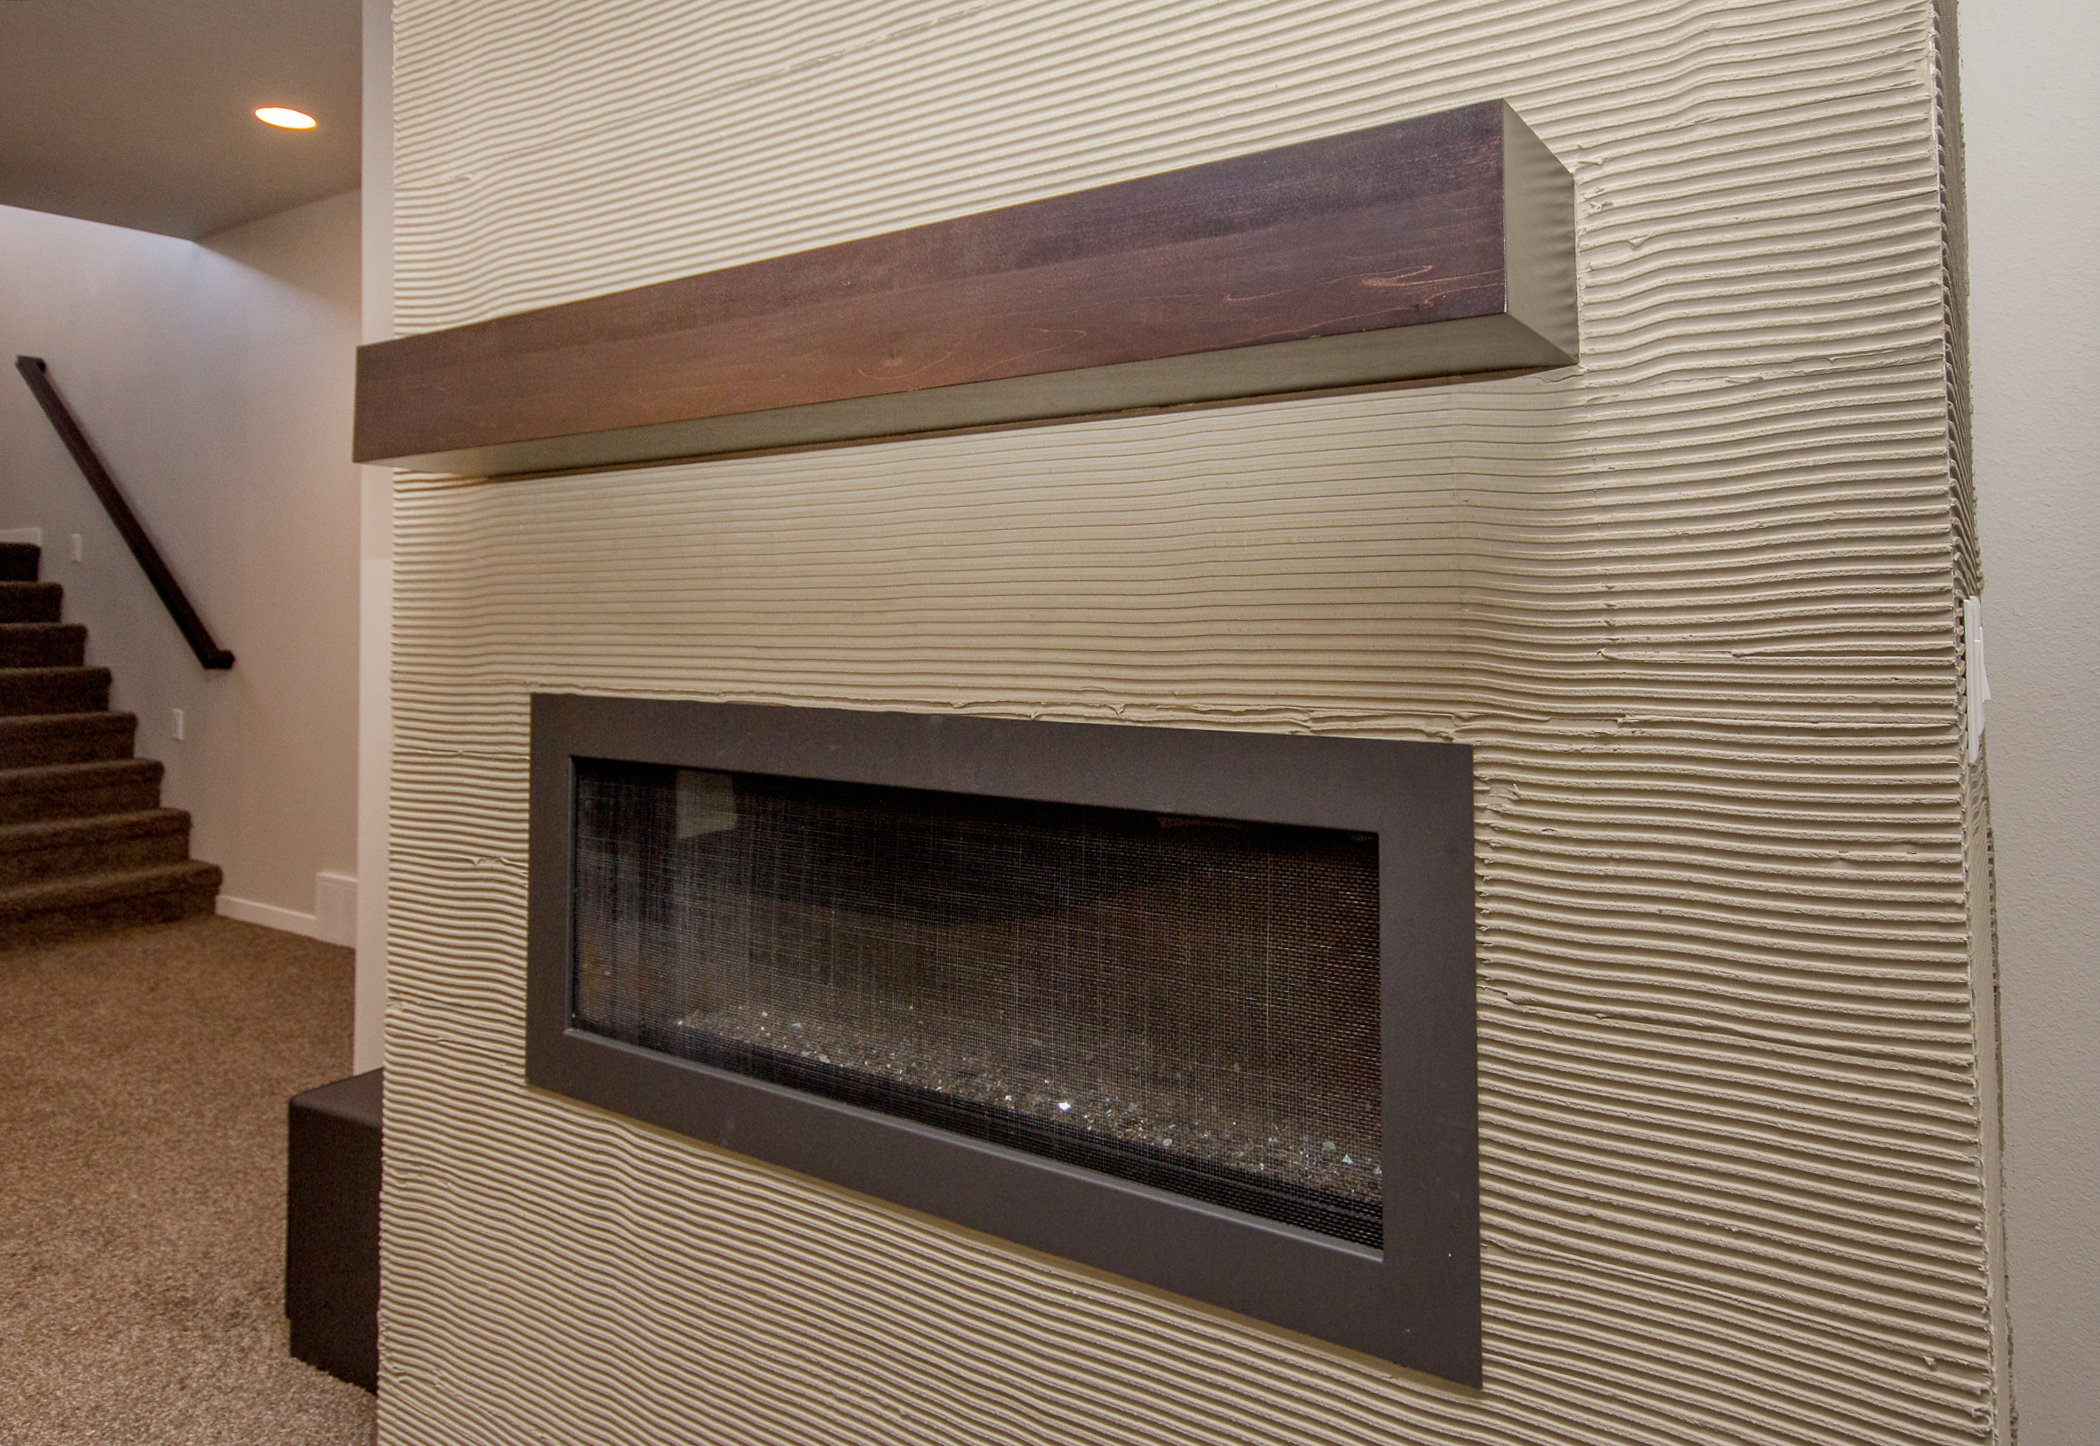 The sky is the limit when it comes to designing and selecting materials for your fireplace